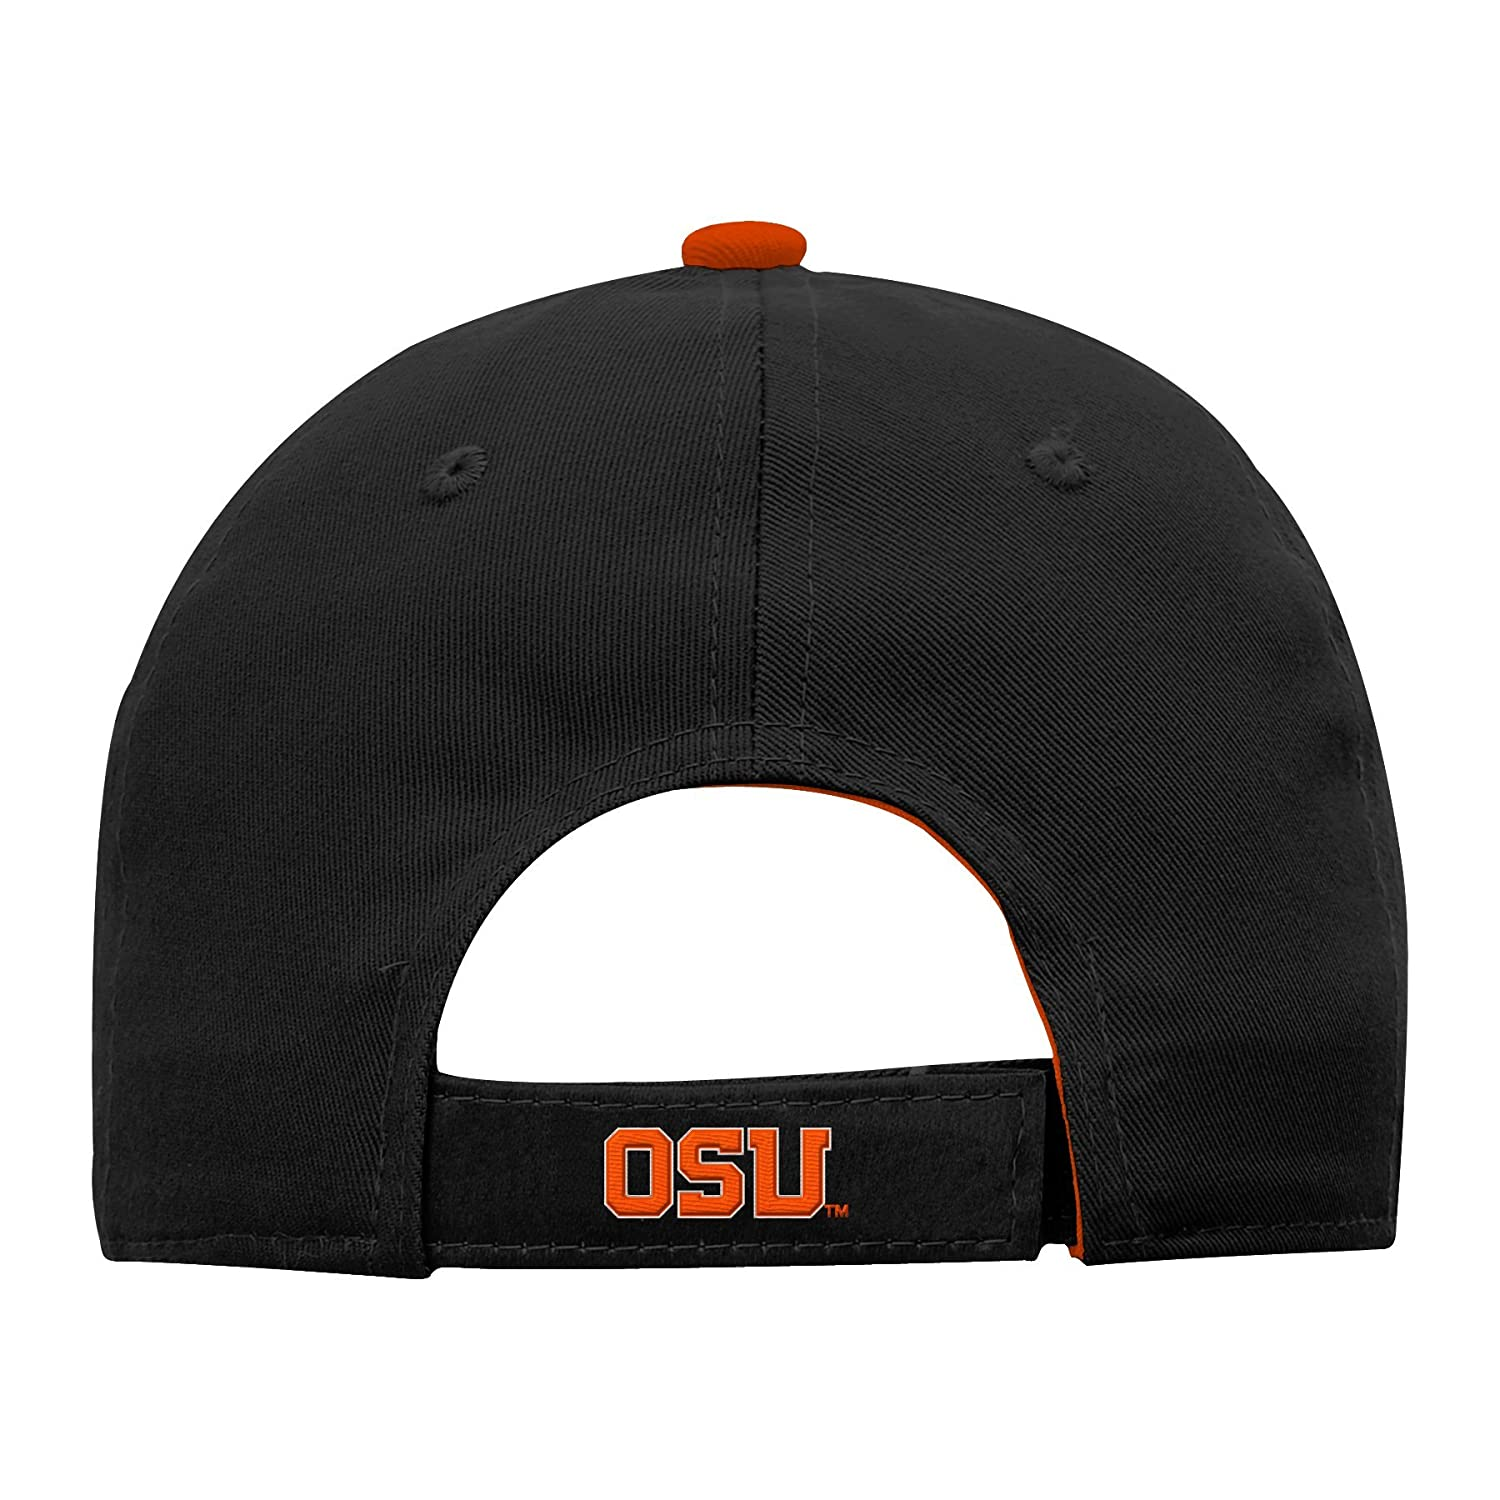 Outerstuff NCAA NCAA Kids /& Youth Boys Basic Structured Adjustable Hat